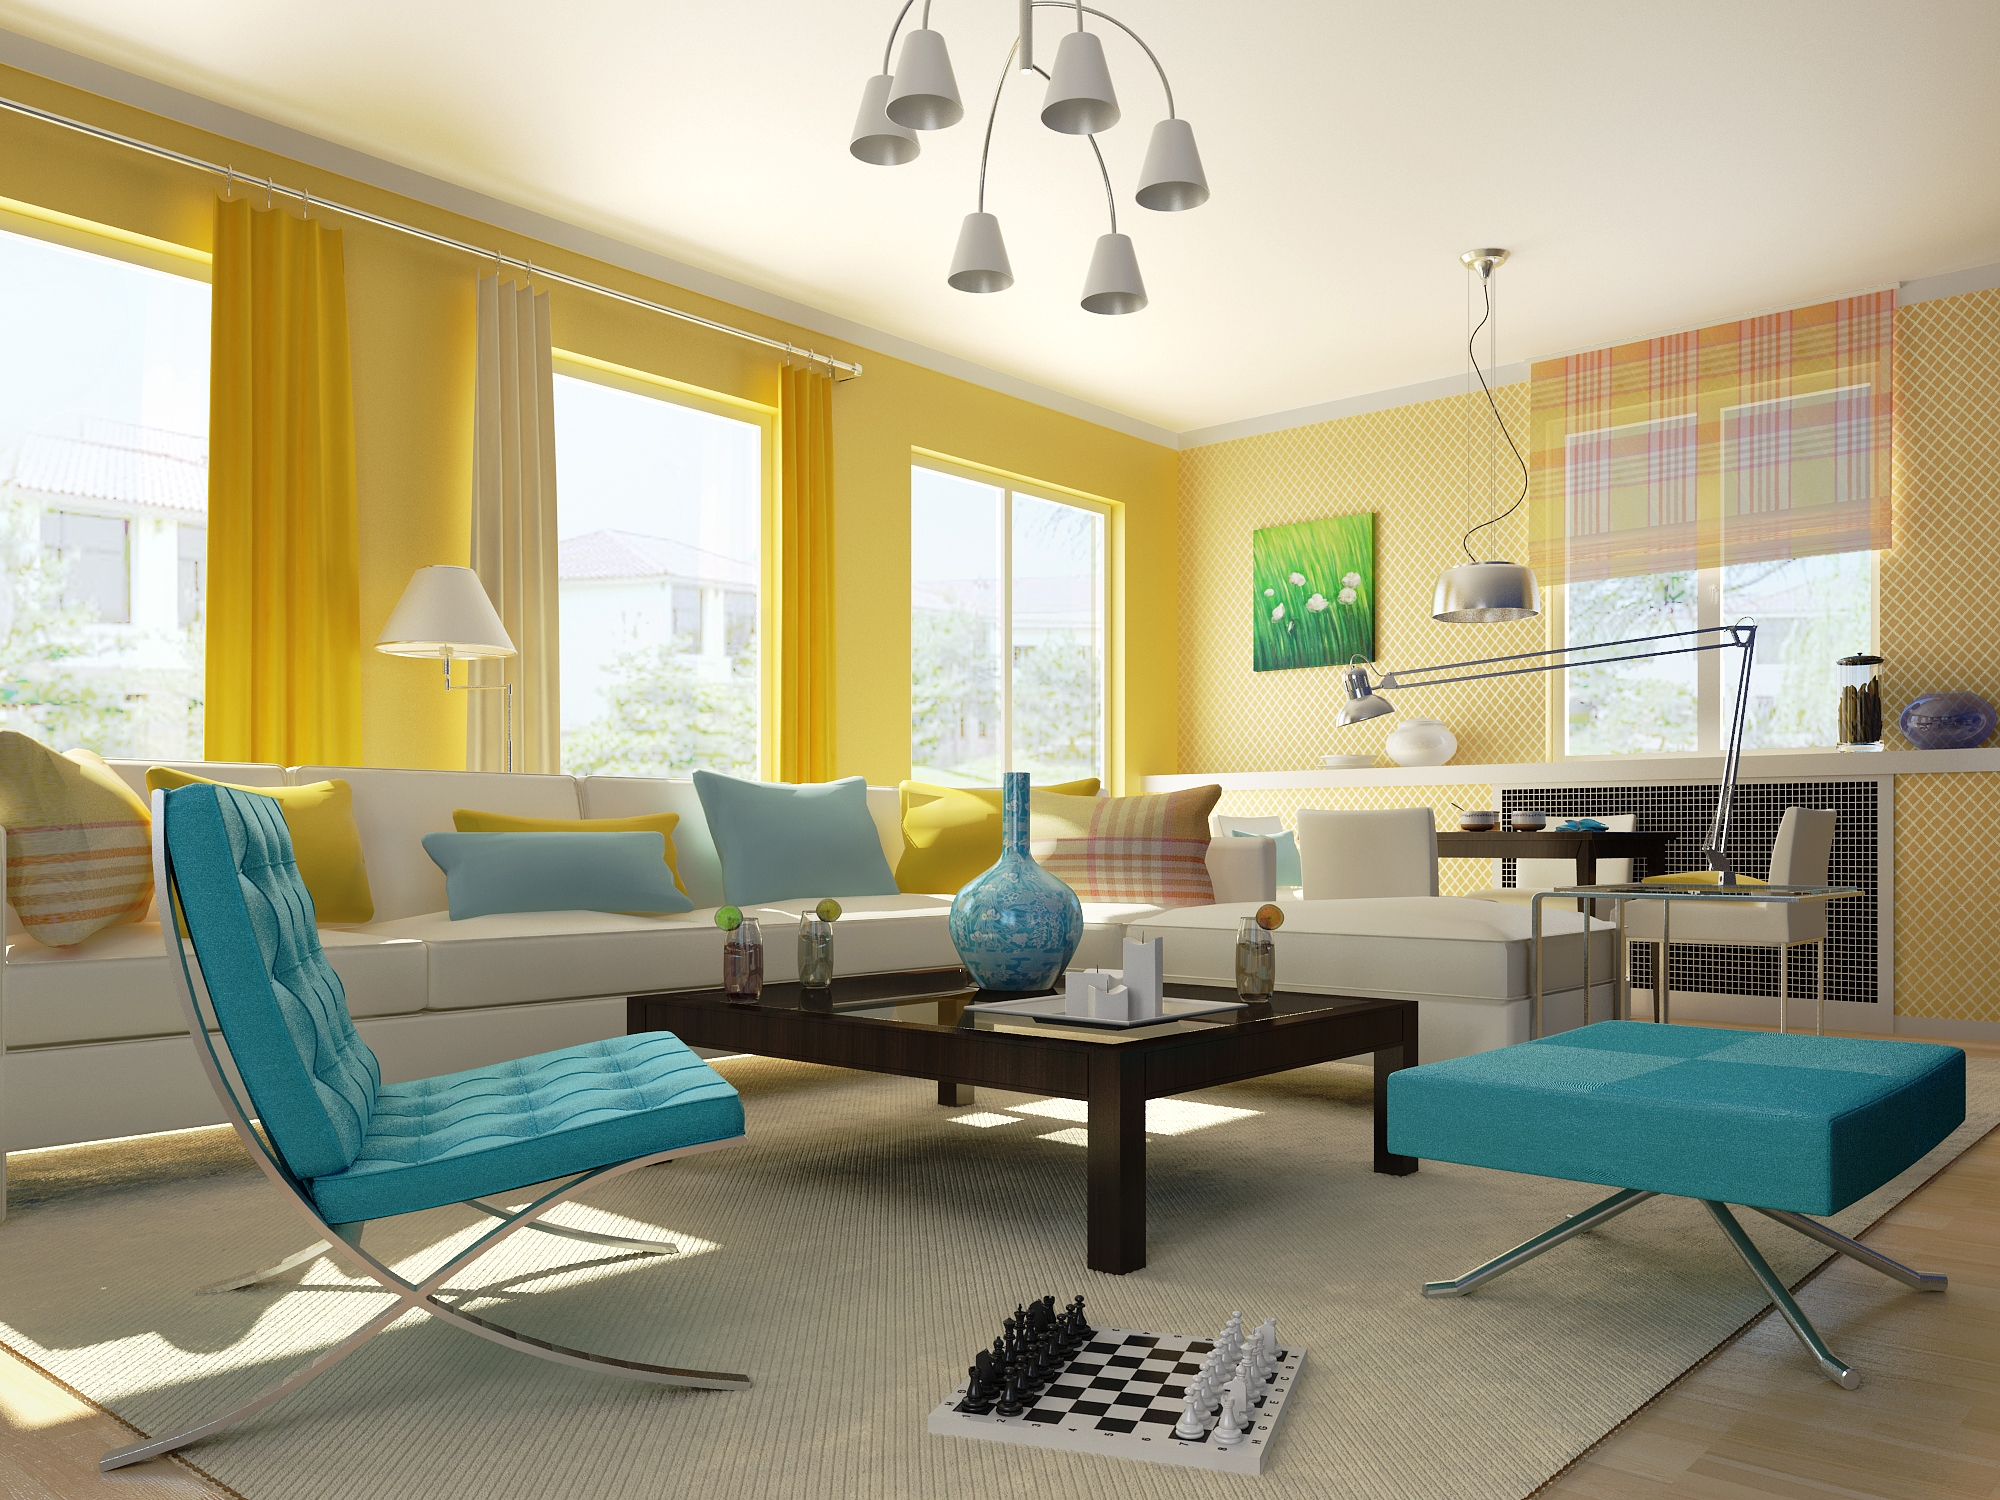 Condo living room 191 3d model for Living room 3d model